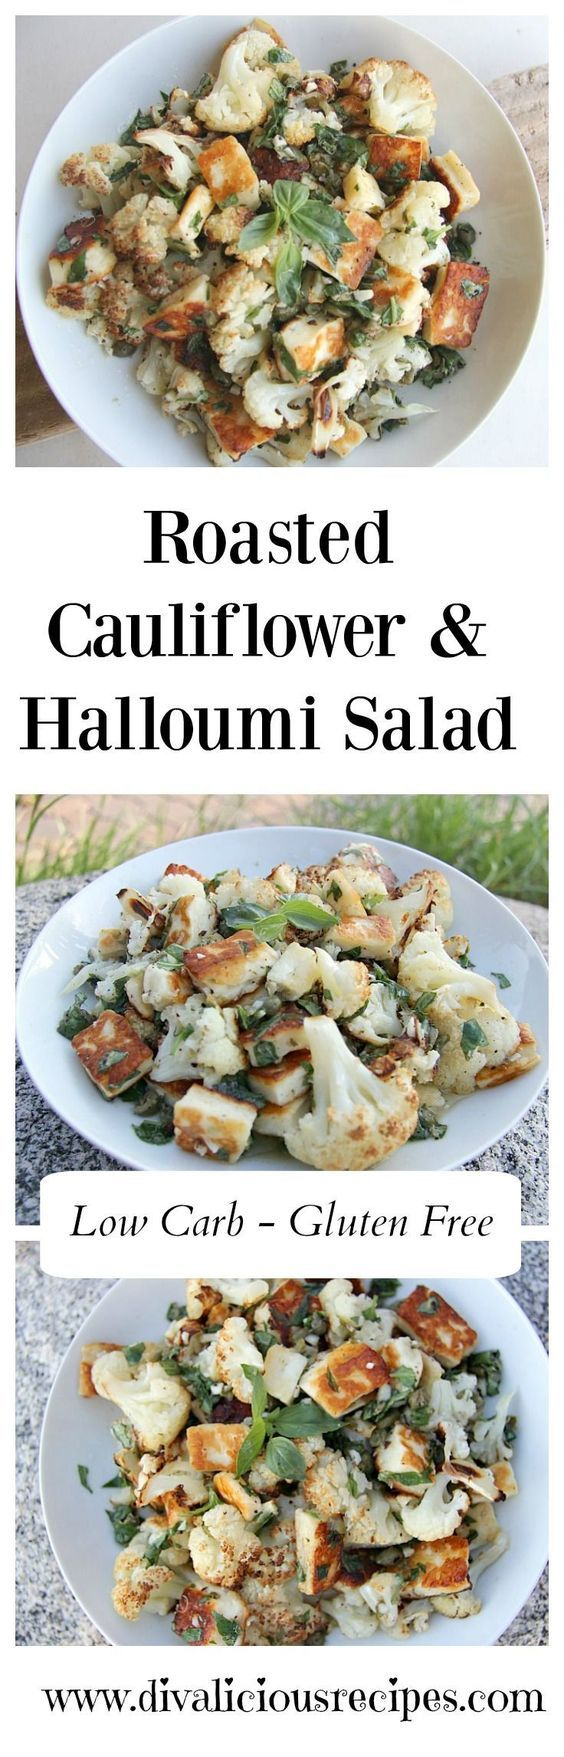 A roasted cauliflower halloumi salad recipe that adds the saltiness of Halloumi cheese in a citrus, basil and caper dressing. Recipe - http://divaliciousrecipes.com/2017/04/04/roasted-cauliflower-halloumi-salad/